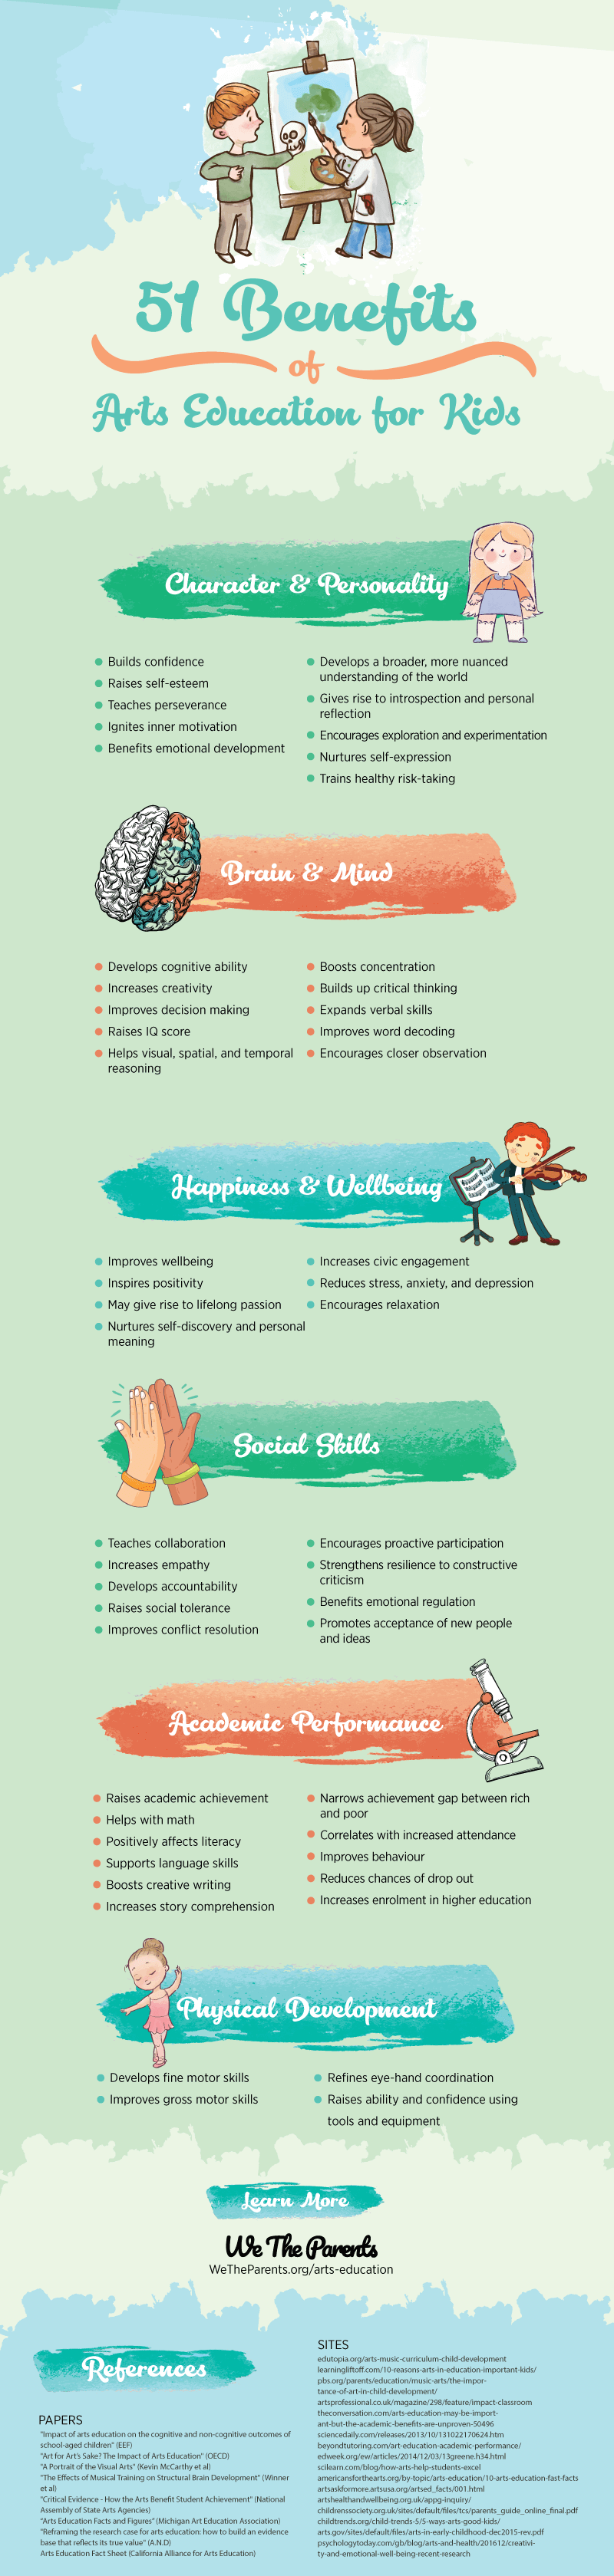 51-Benefits-of-Arts-Education-for-Kids-INFOGRAPHIC